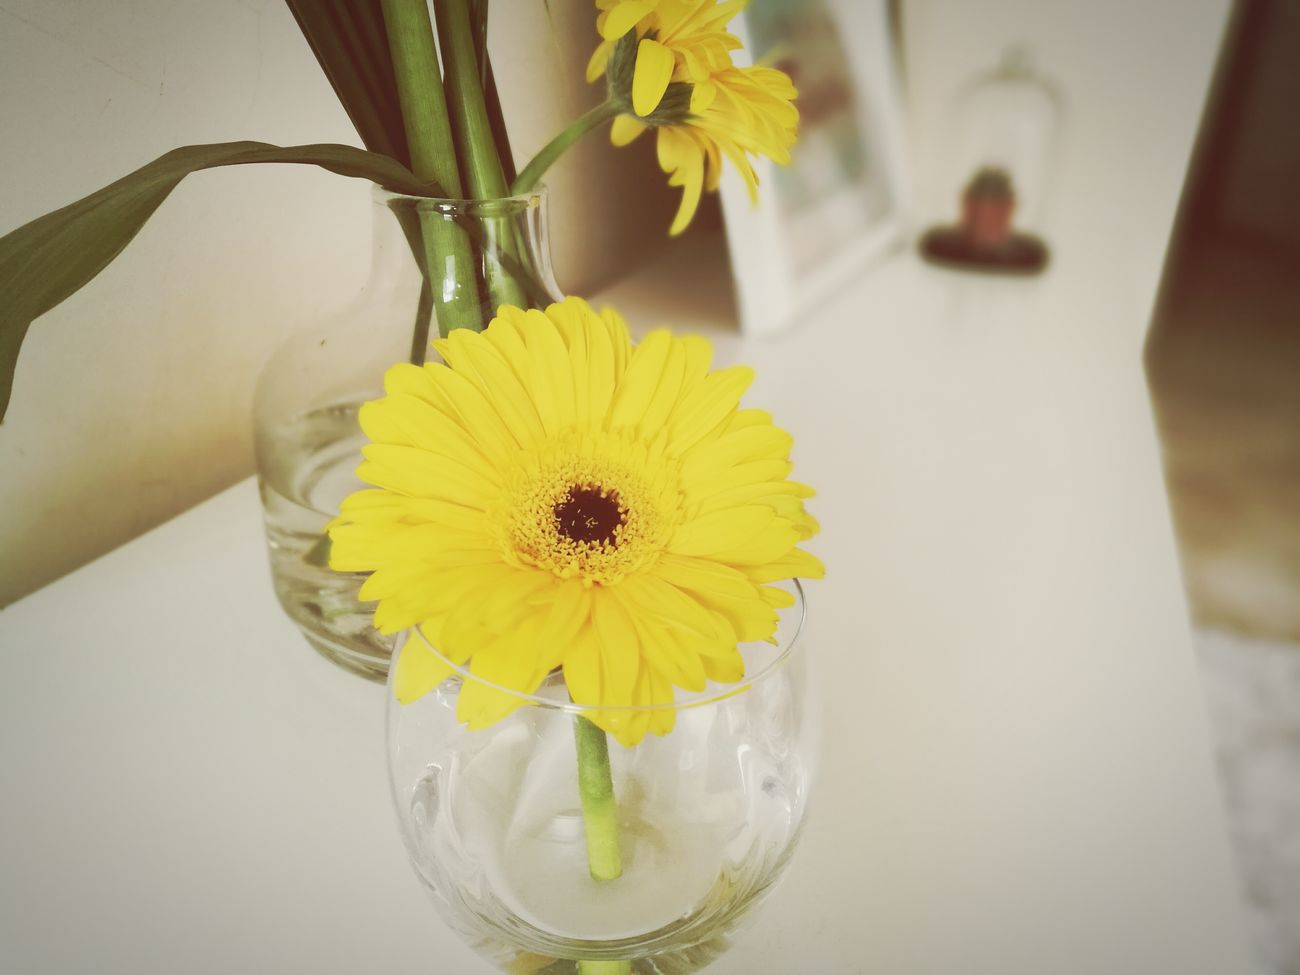 I took this picture at a friend's place, the flower suddenly broke down and it made me realize how sometimes we break from others to stand out, even if it would mean we only gonna last less time. Yellow Flower Flower Head Petal Nature Plant Fragility Close-up Pollen Beauty In Nature Daisy Growth Indoors  Freshness No People Sunflower Day Morocco 🇲🇦 Leaf Nature